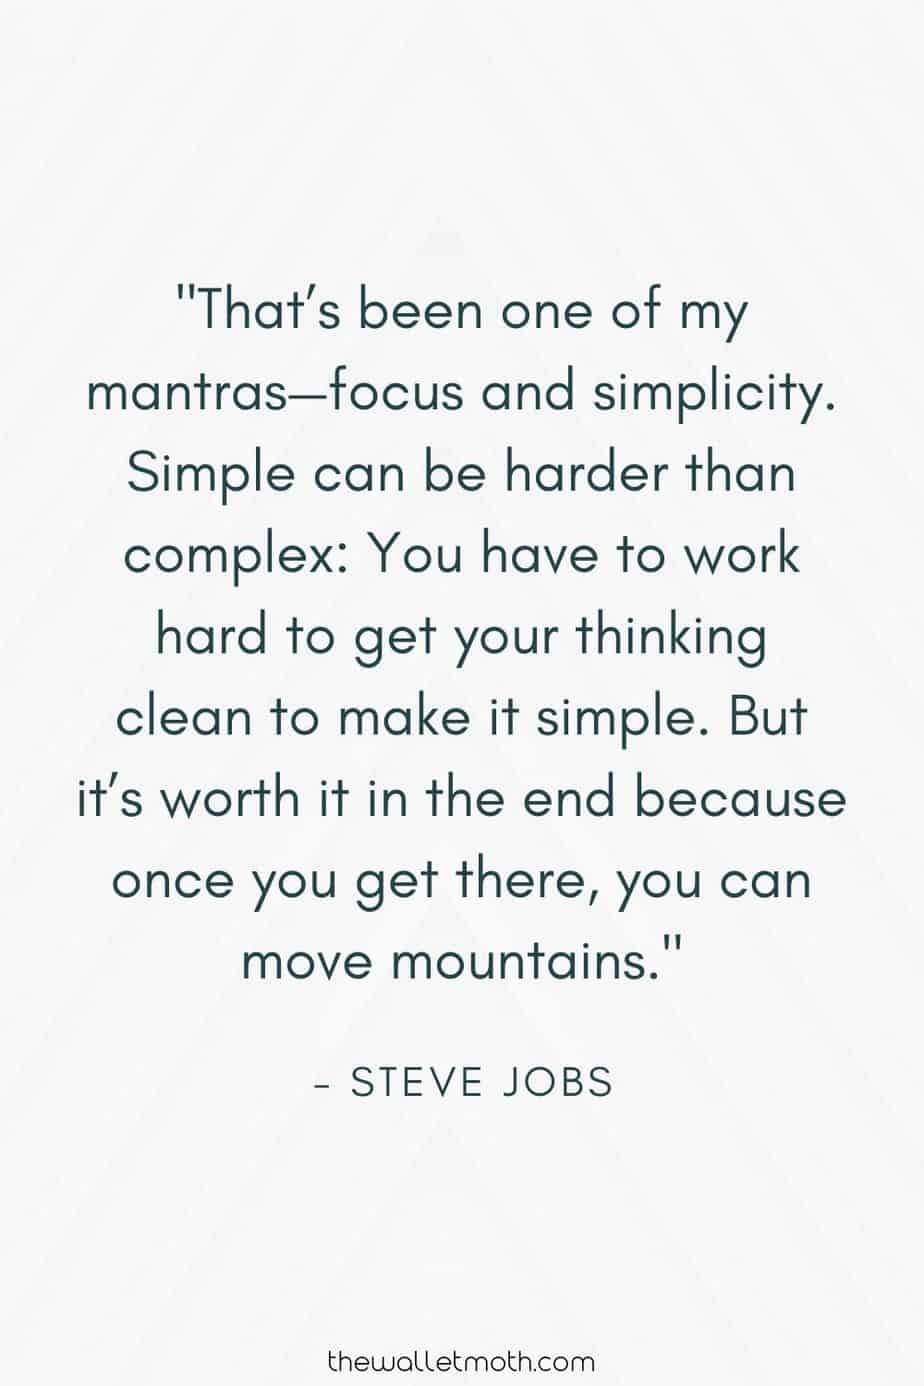 """That's been one of my mantras - focus and simplicity. Simple can be harder than complex: you have to work hard to get your thinking clean to make it simple. But it's worth it in the end because once you get there, you can move mountains."" - Steve Jobs"